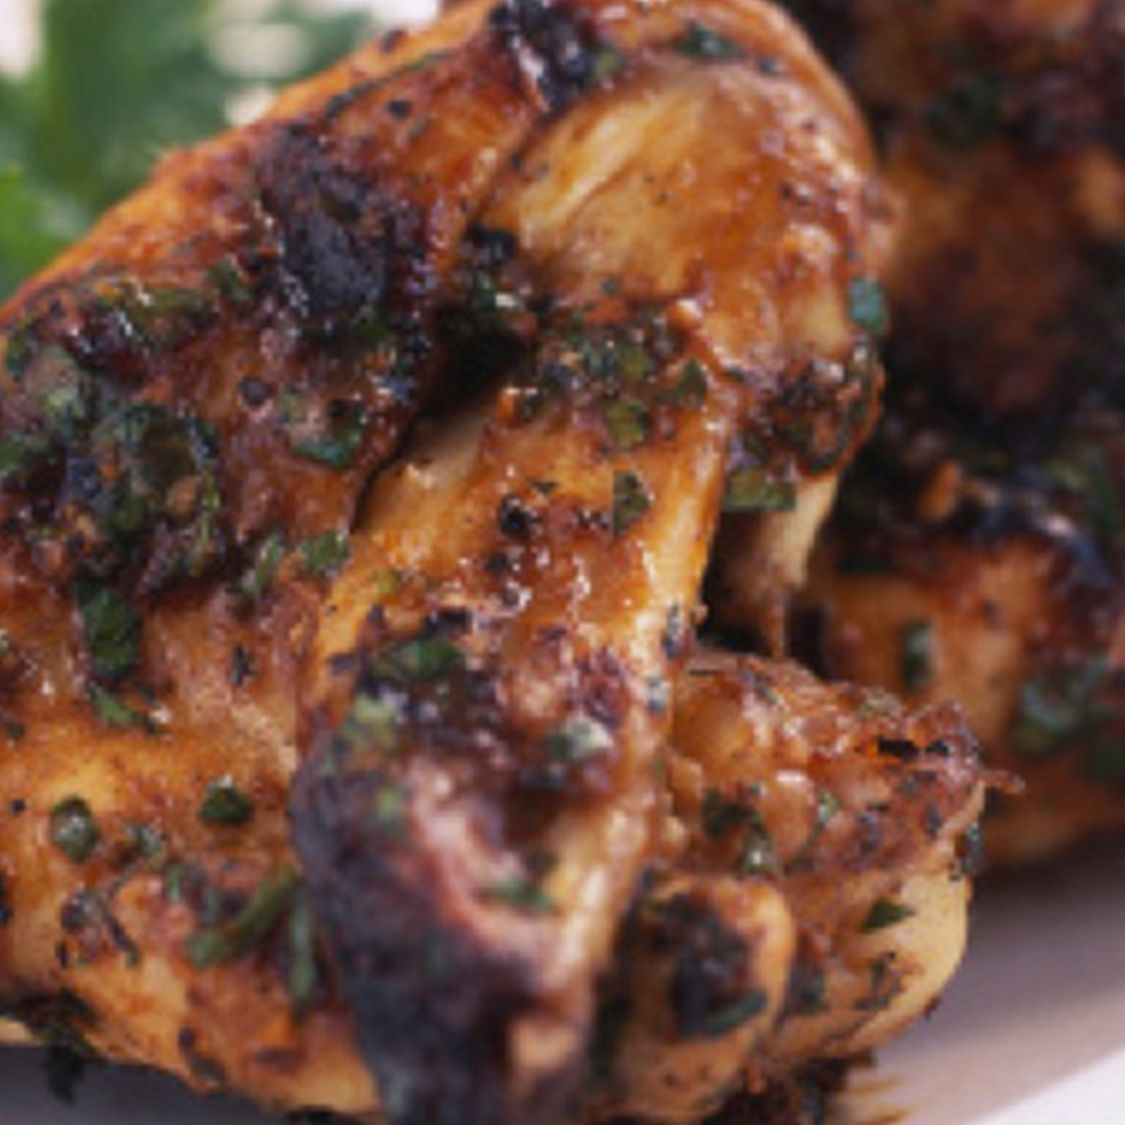 wicked_chimichurri_wings.jpg